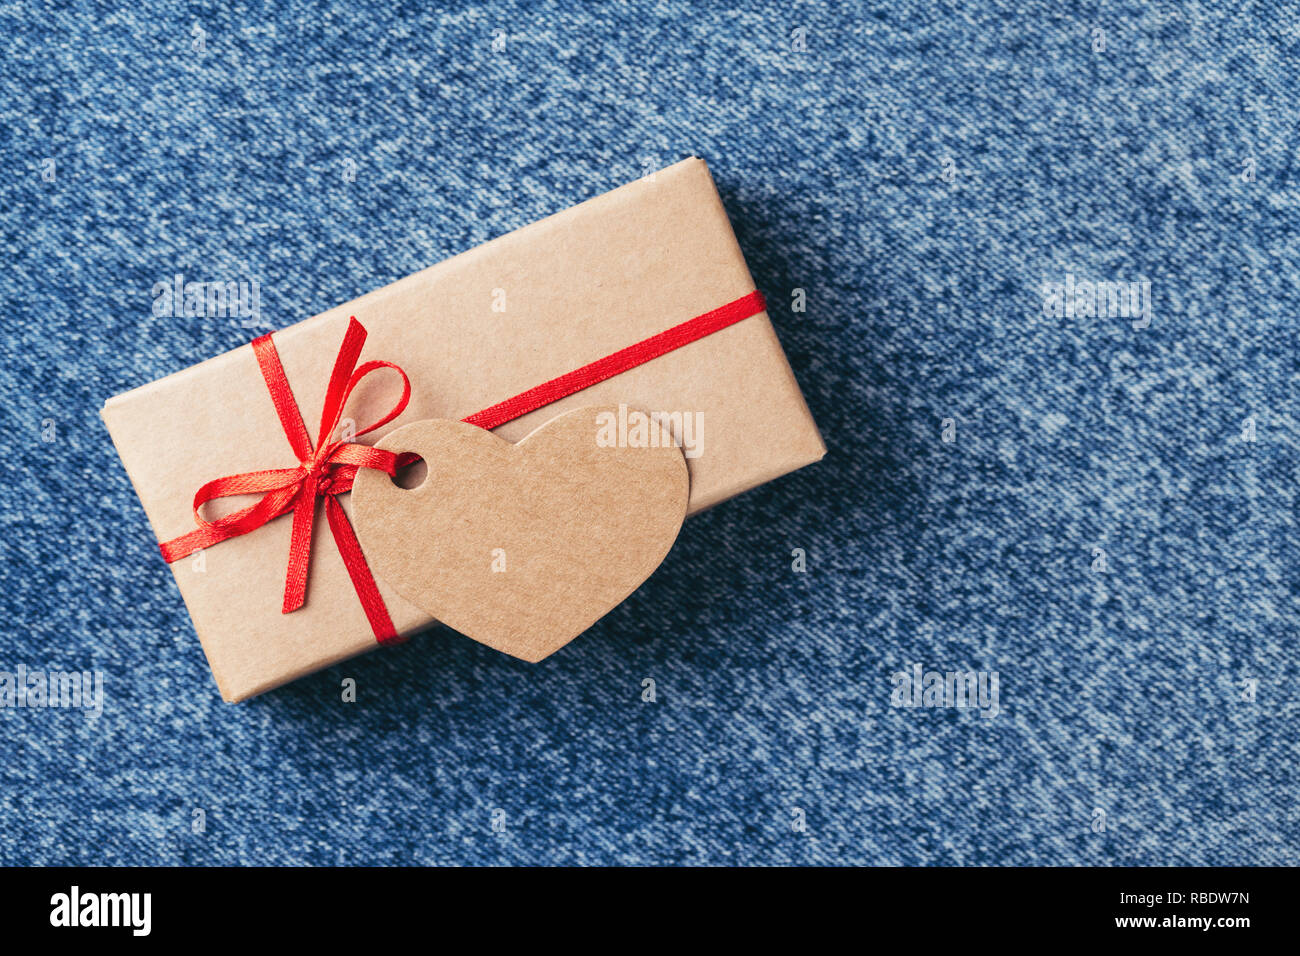 Kraft gift box with red bow and tag in shape of heart on blue jeans. Valentine's day card. - Stock Image